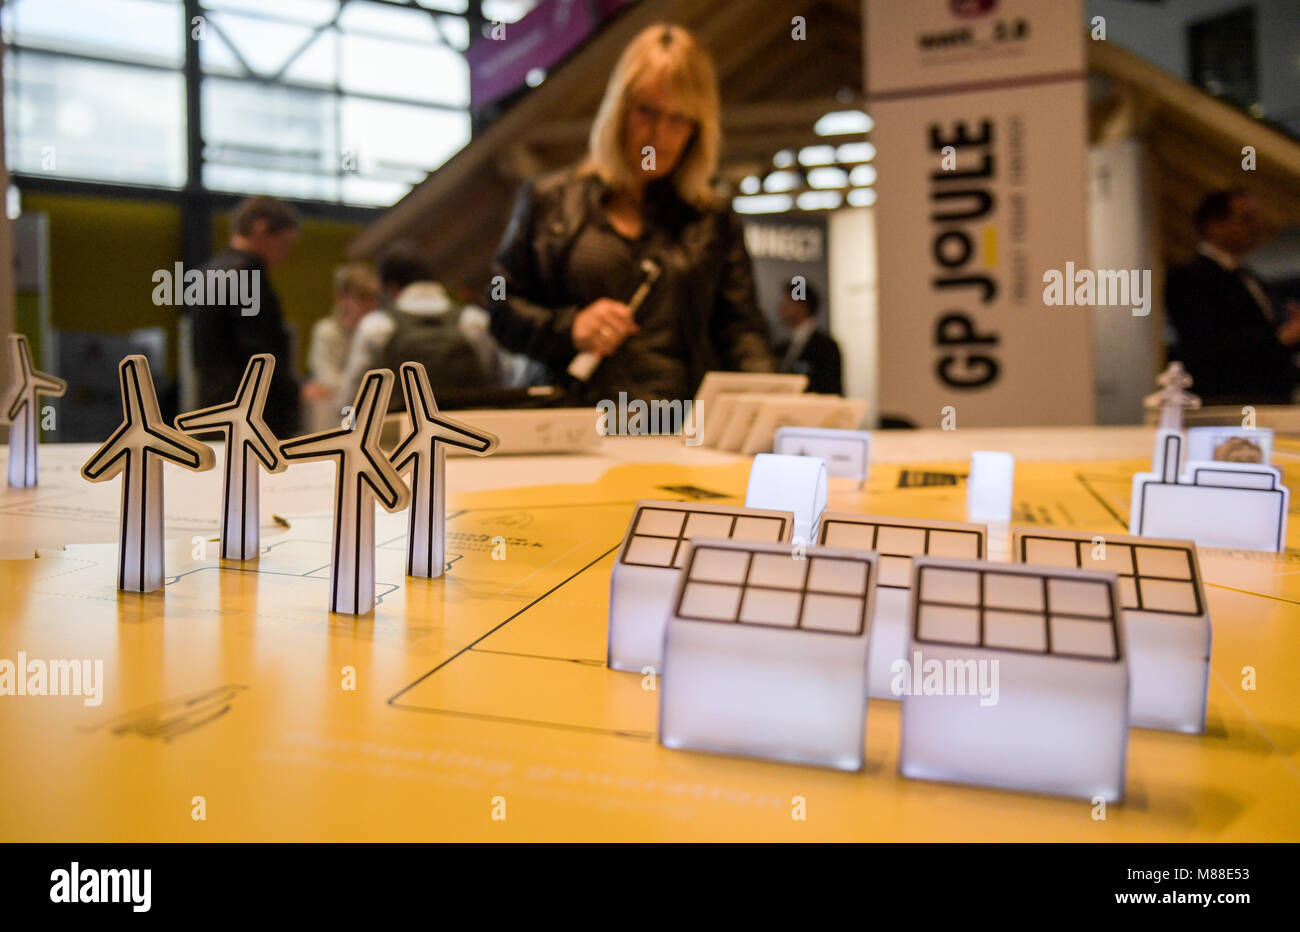 15 March 2018, Germany, Husum: A woman looking at the schematics of an energy supply system at the fair New Energy - Stock Image